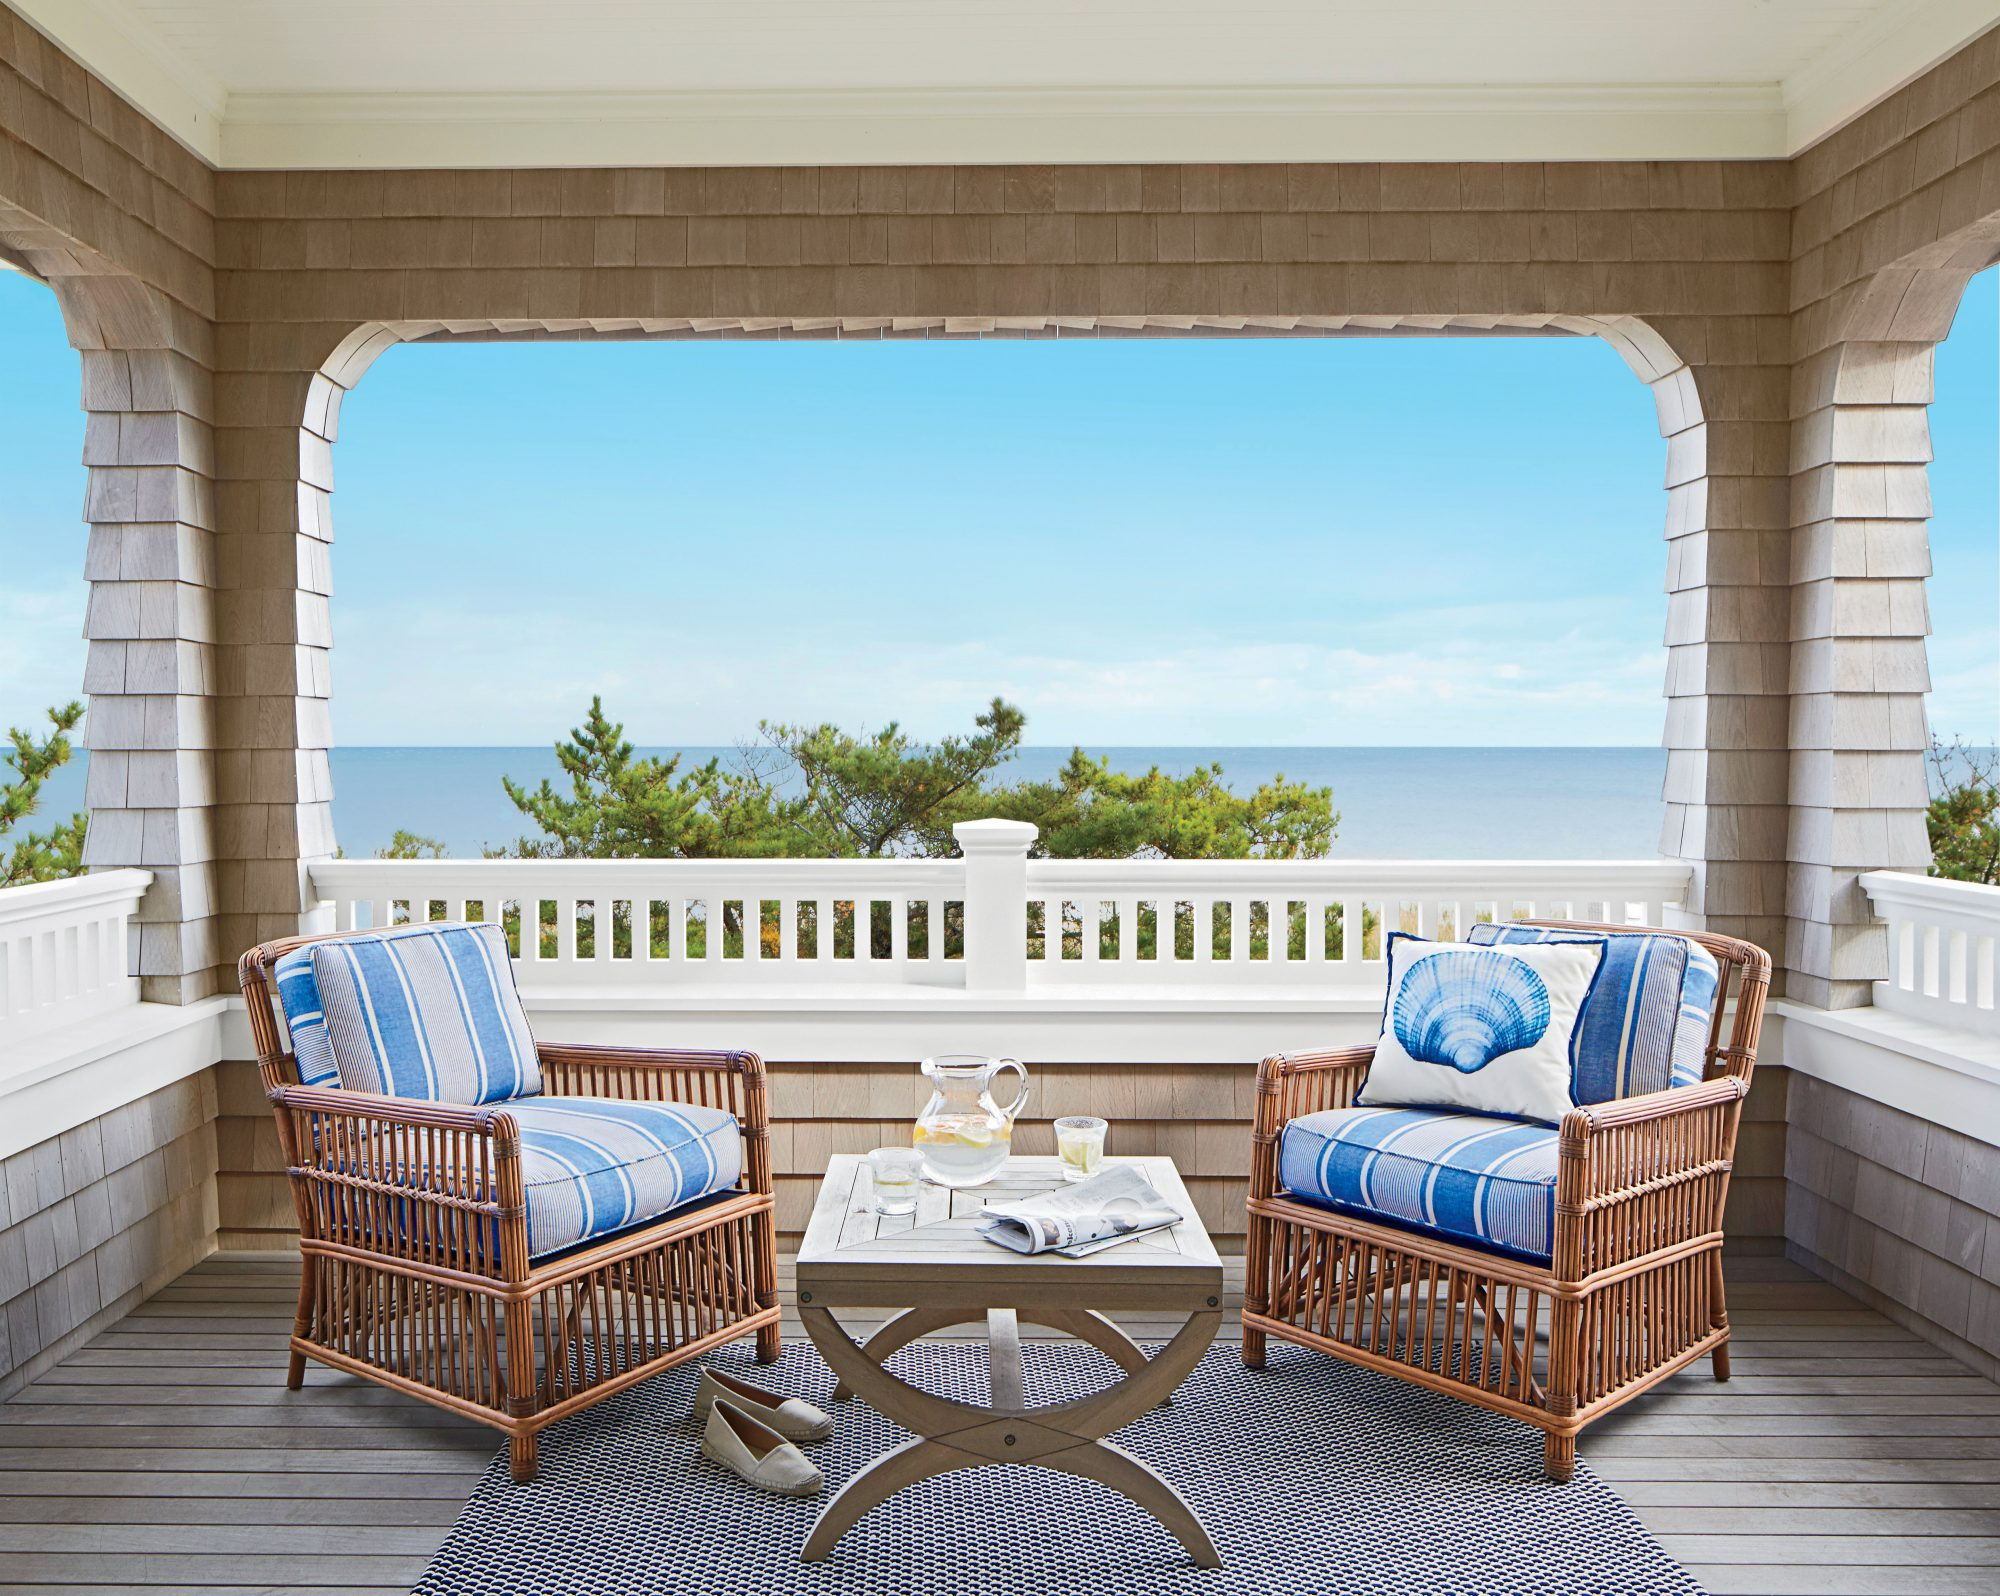 Panoramic water views, ocean-inspired décor, and classic charm are abundant on this restful Jersey Shore porch.